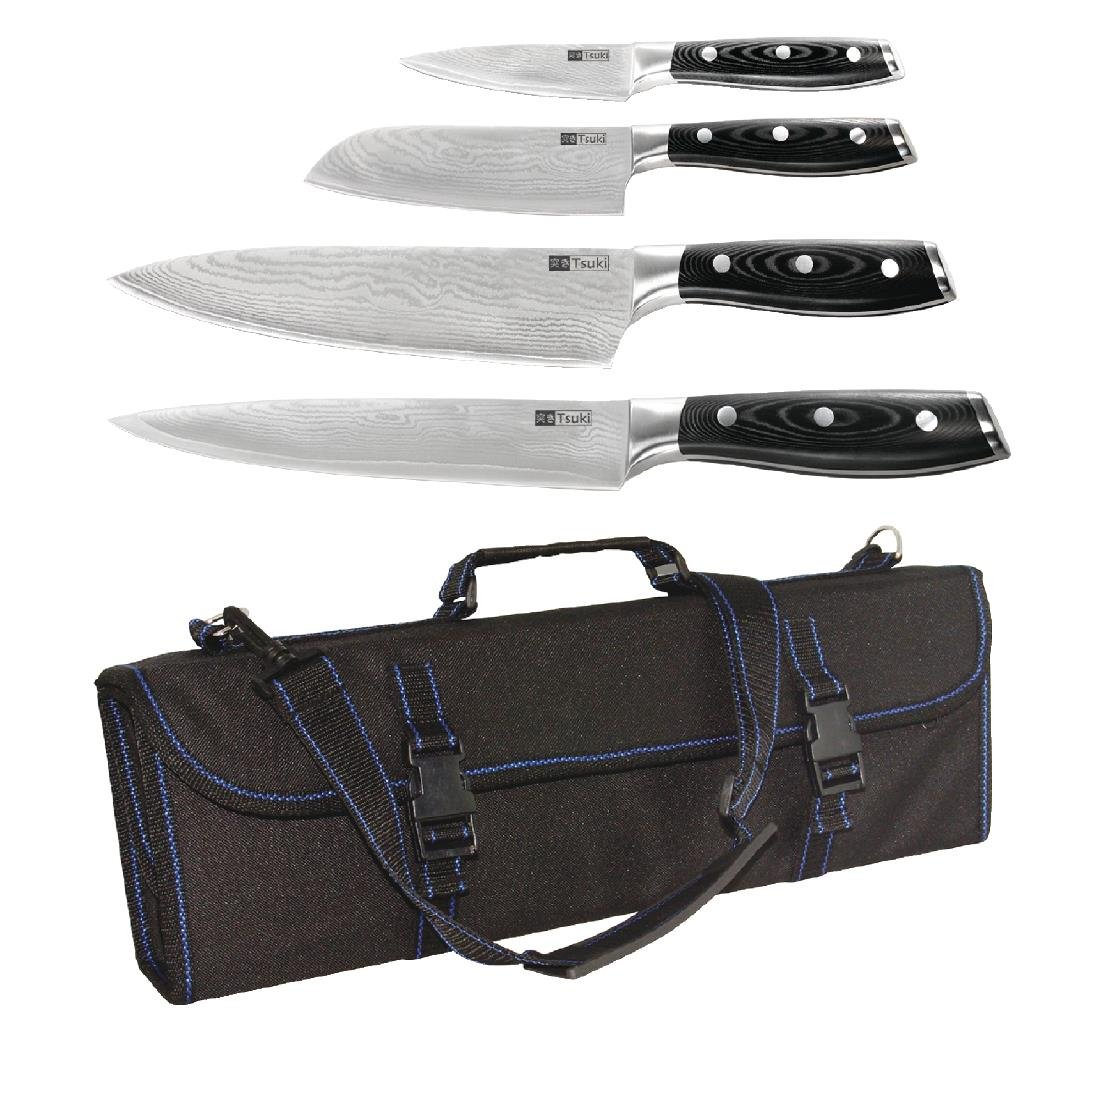 SPECIAL OFFER Tsuki 4 Piece Series 7 Knife Set and Case